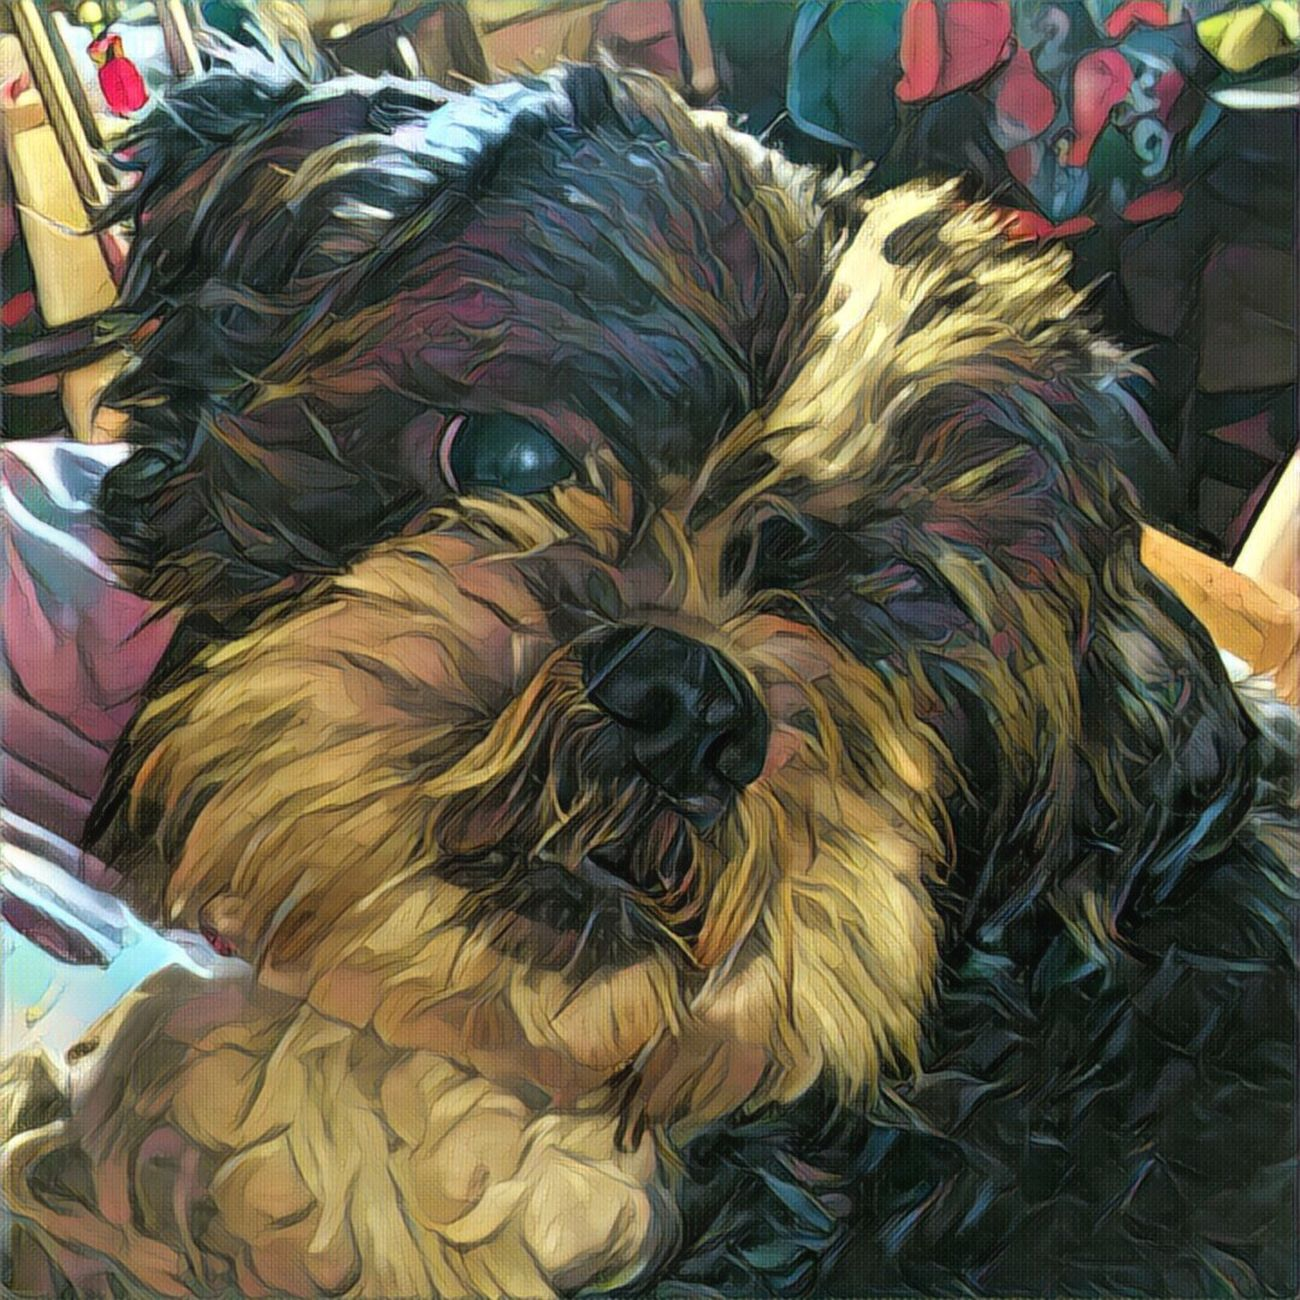 Pets Dog Shihtzu Art